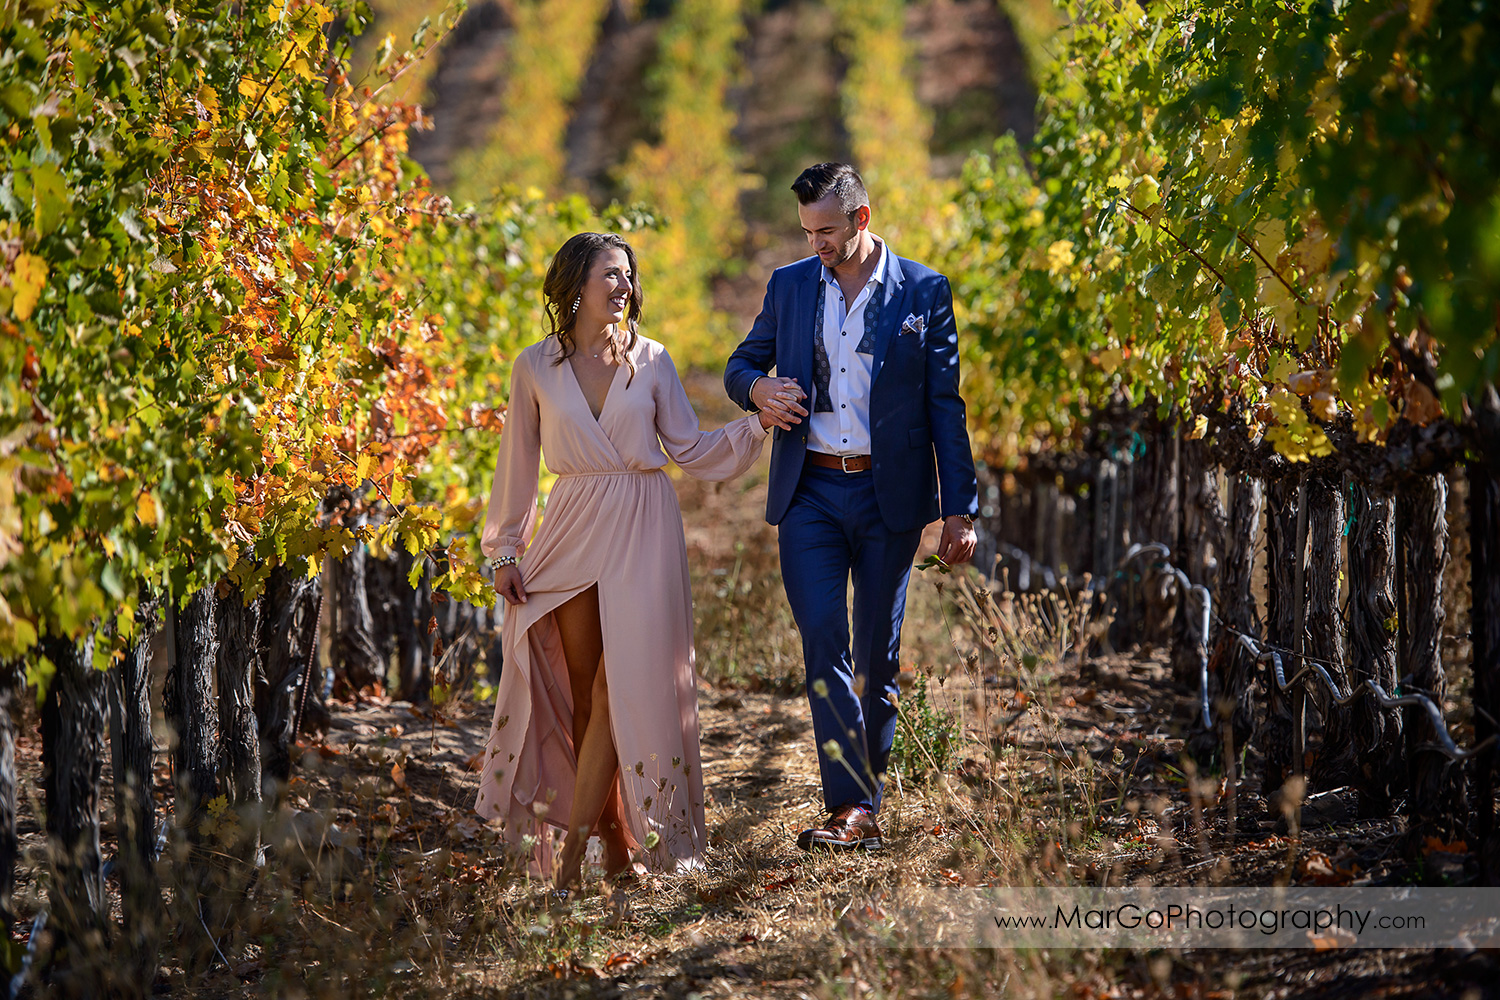 woman in pink dress and man in blue suit holding hands and walking in vineyard during Napa Valley engagement session at Castello di Amorosa in Calistoga